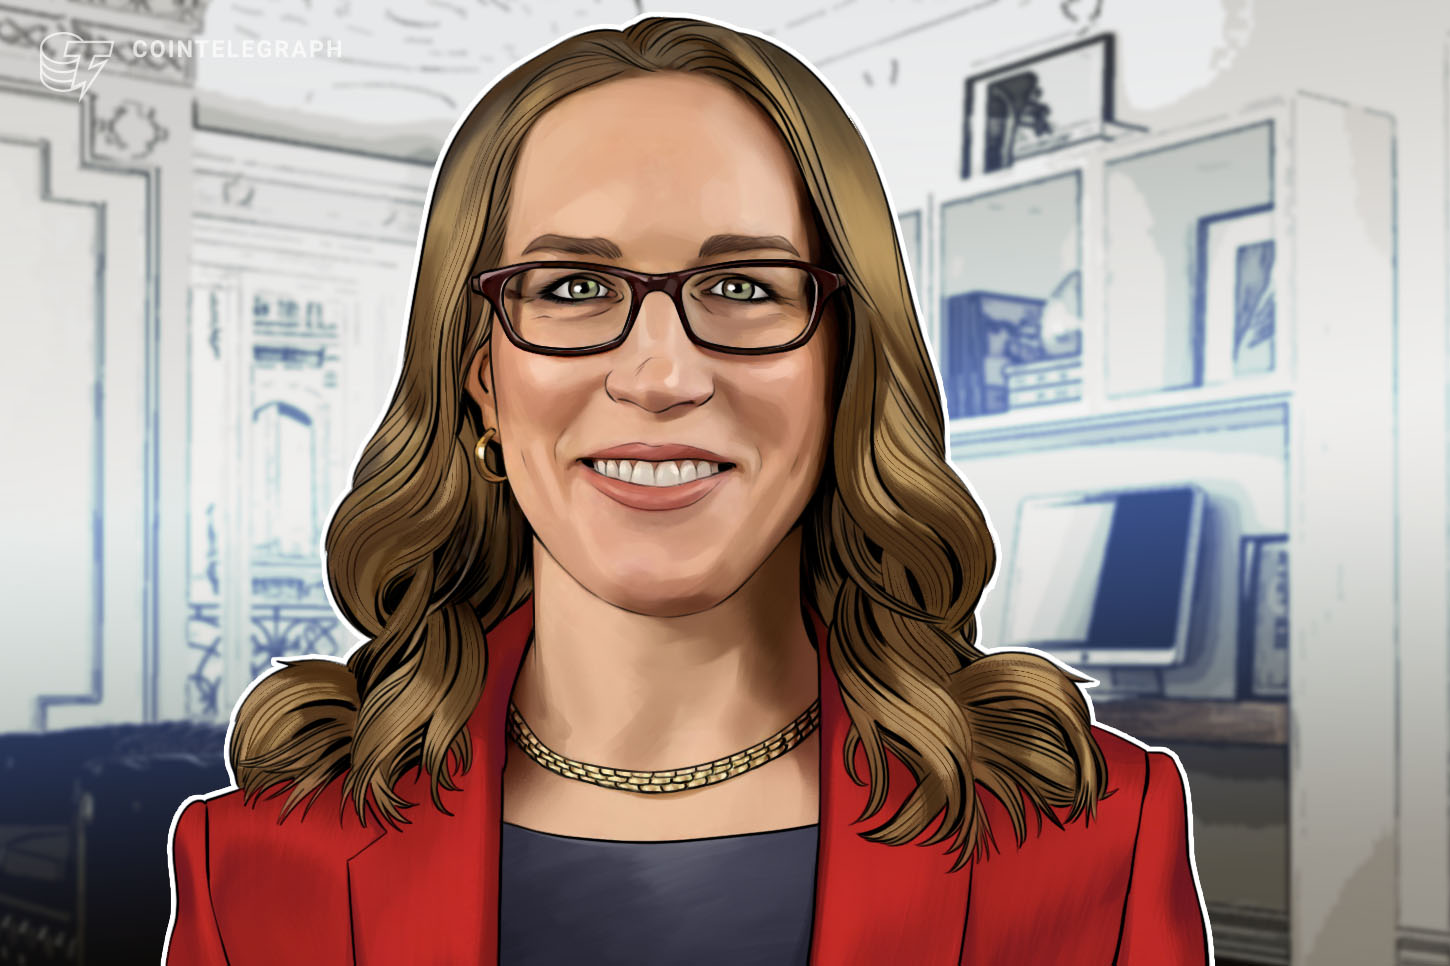 Stricter crypto laws will stifle innovation, says SEC Commissioner Hester Peirce